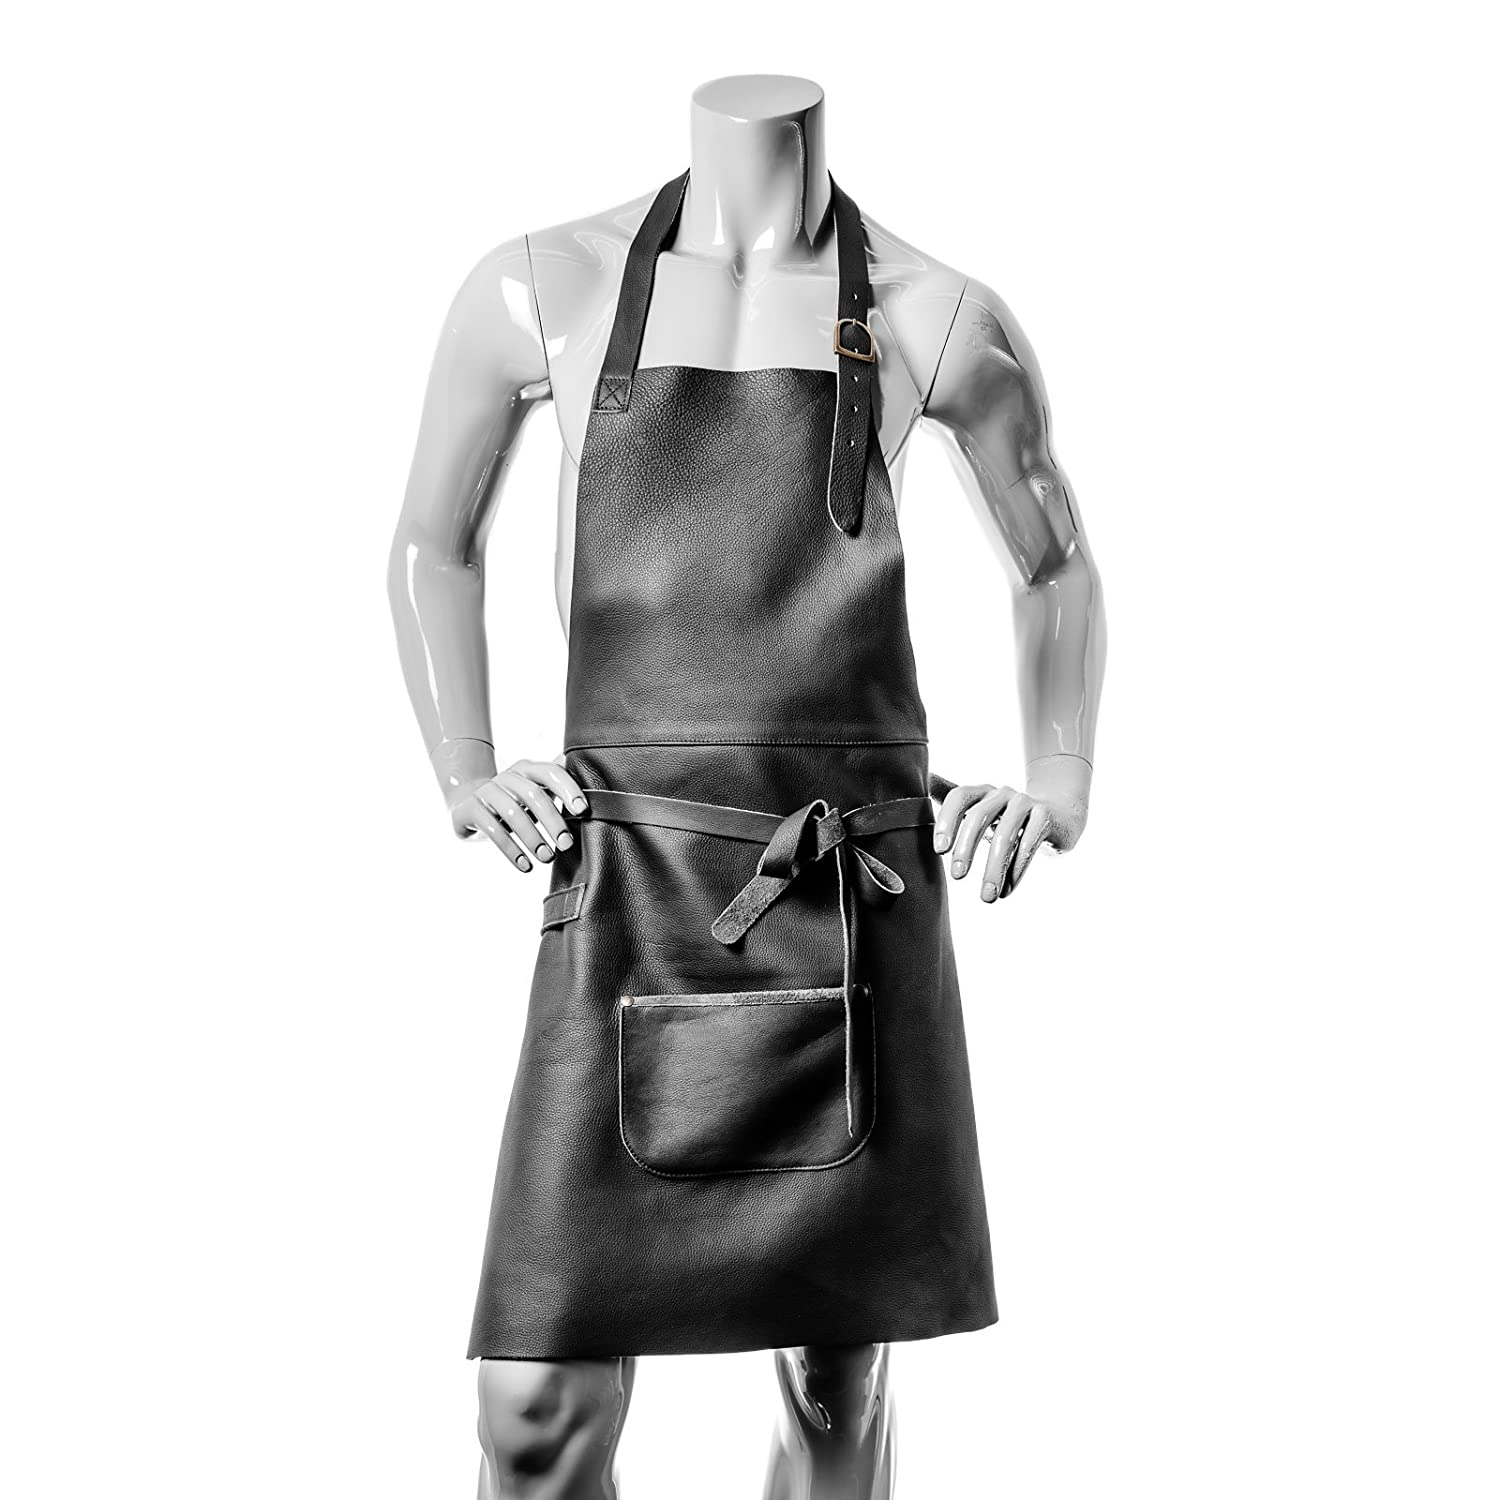 Vedgla leather BBQ / Cooking / Barman' s apron, high quality leather with adjustable straps and perfect fit, 84 cm x 70 cm, in black